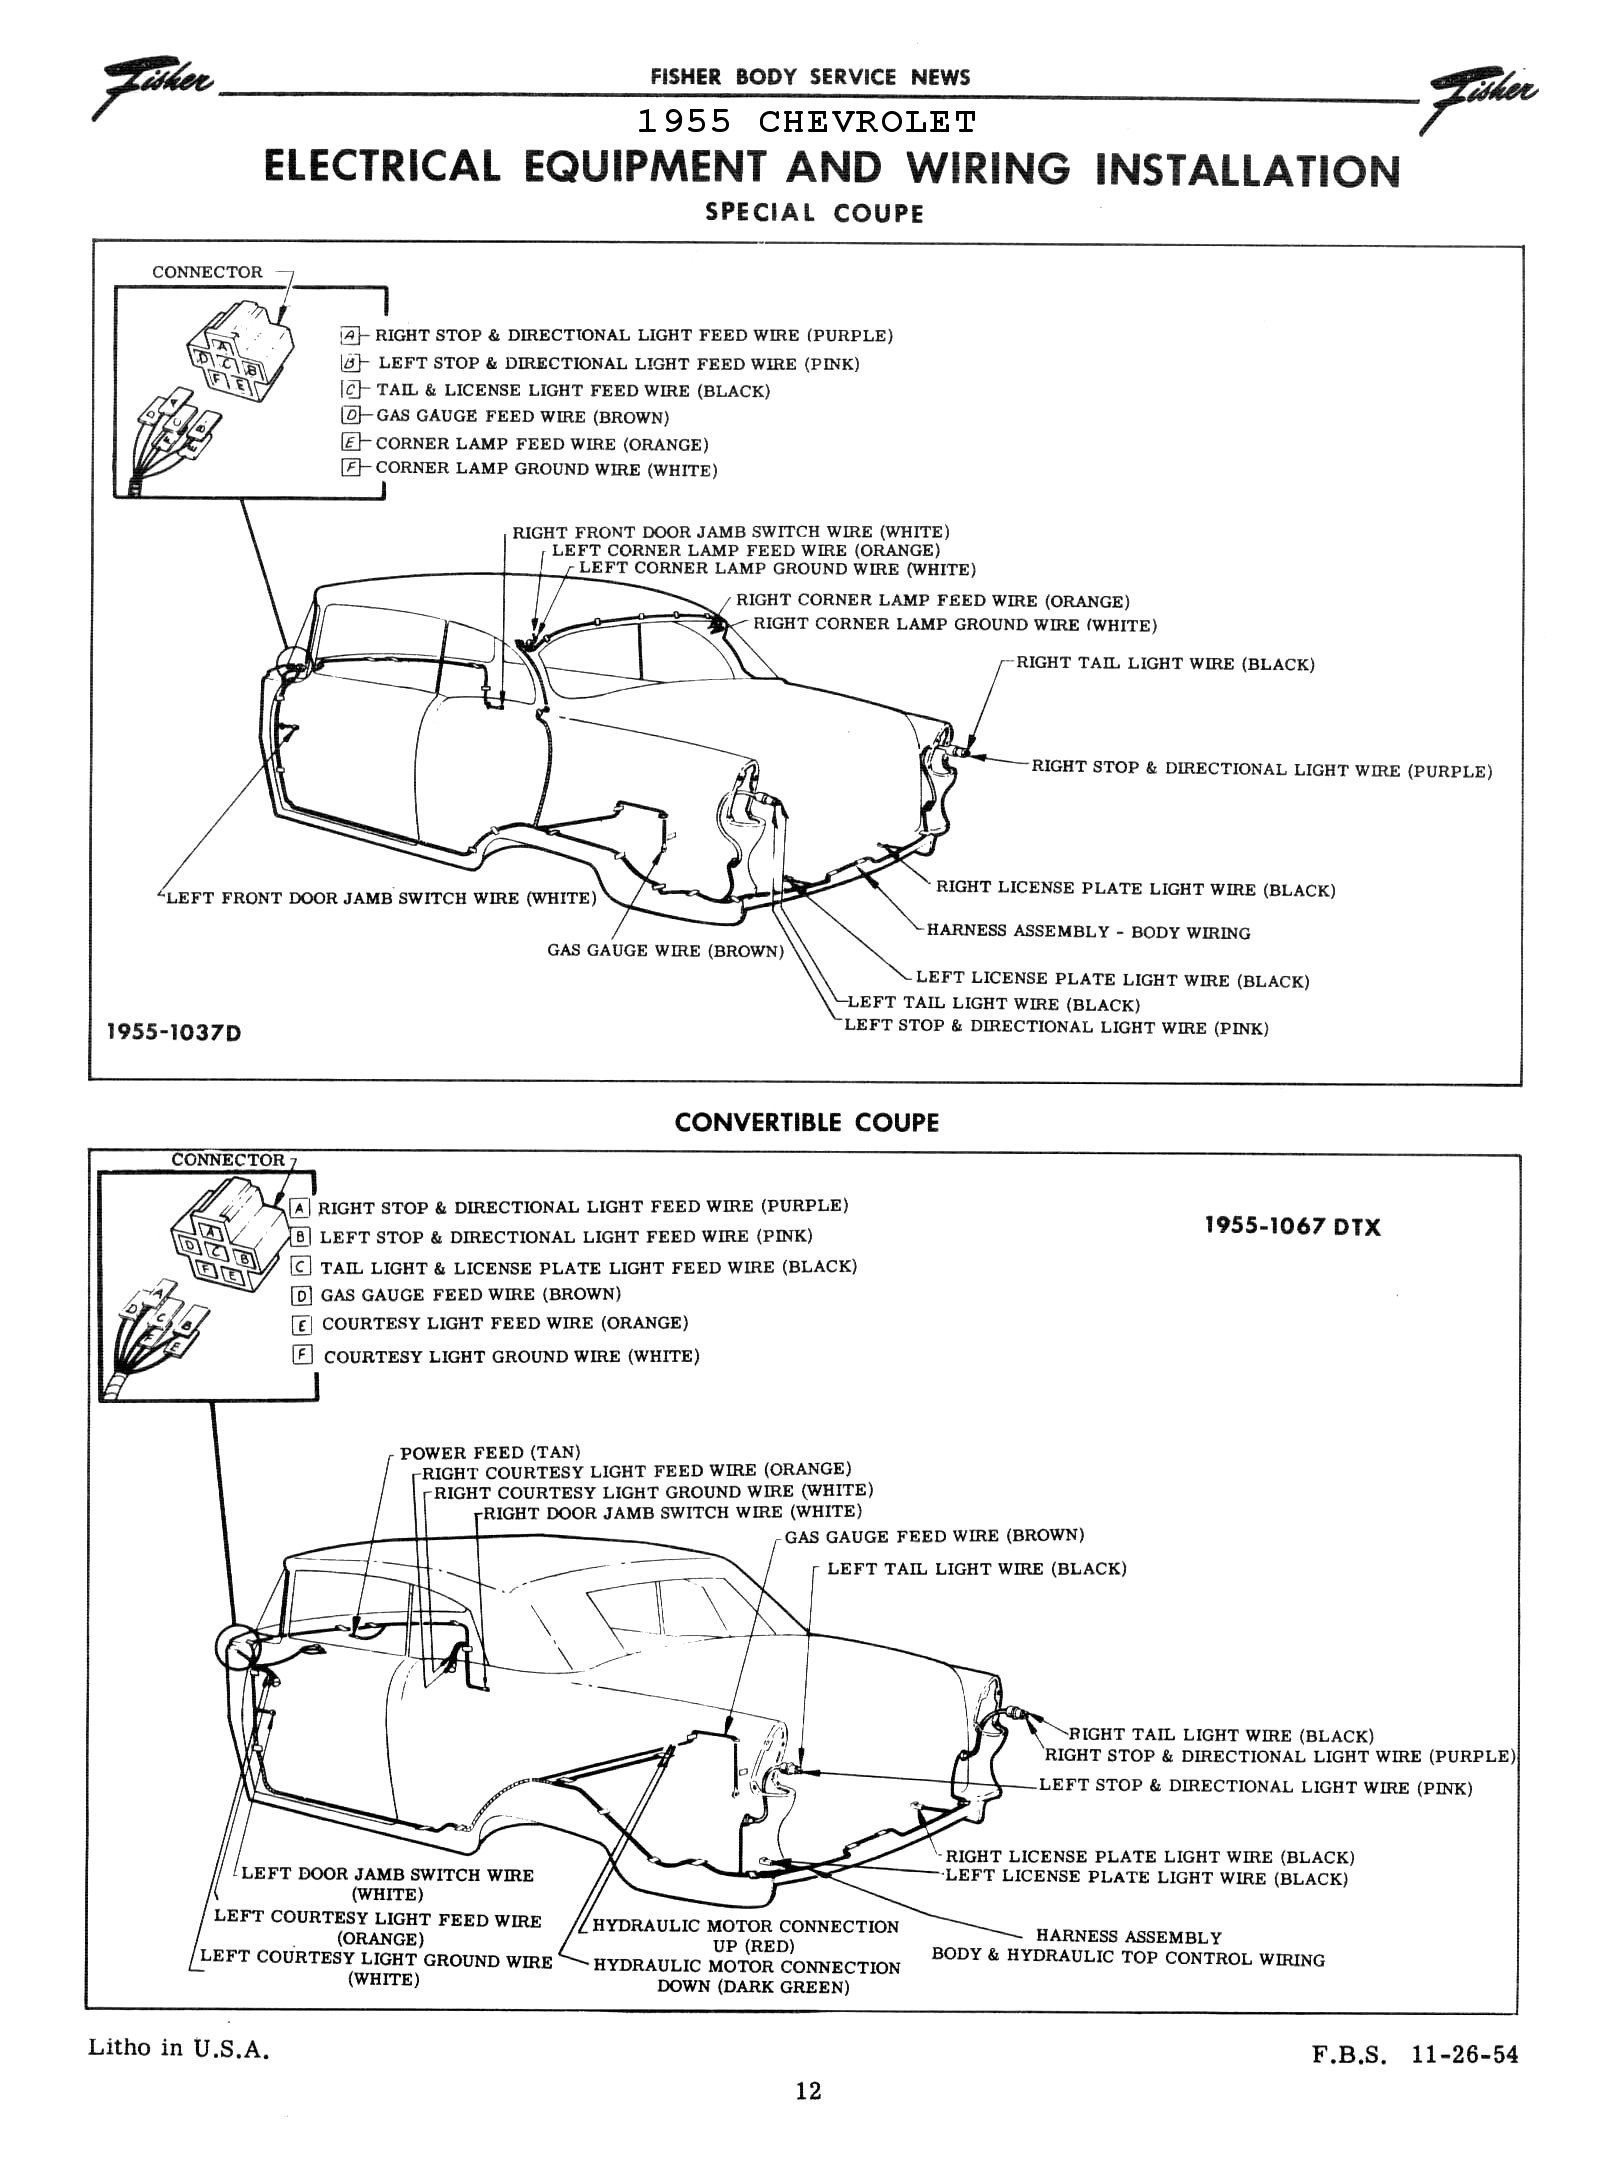 1956 Chevy Backup Light Wiring Diagram Not Lossing Camera Diagrams Rh Oldcarmanualproject Com 2004 Express Schematics Headlight Switch